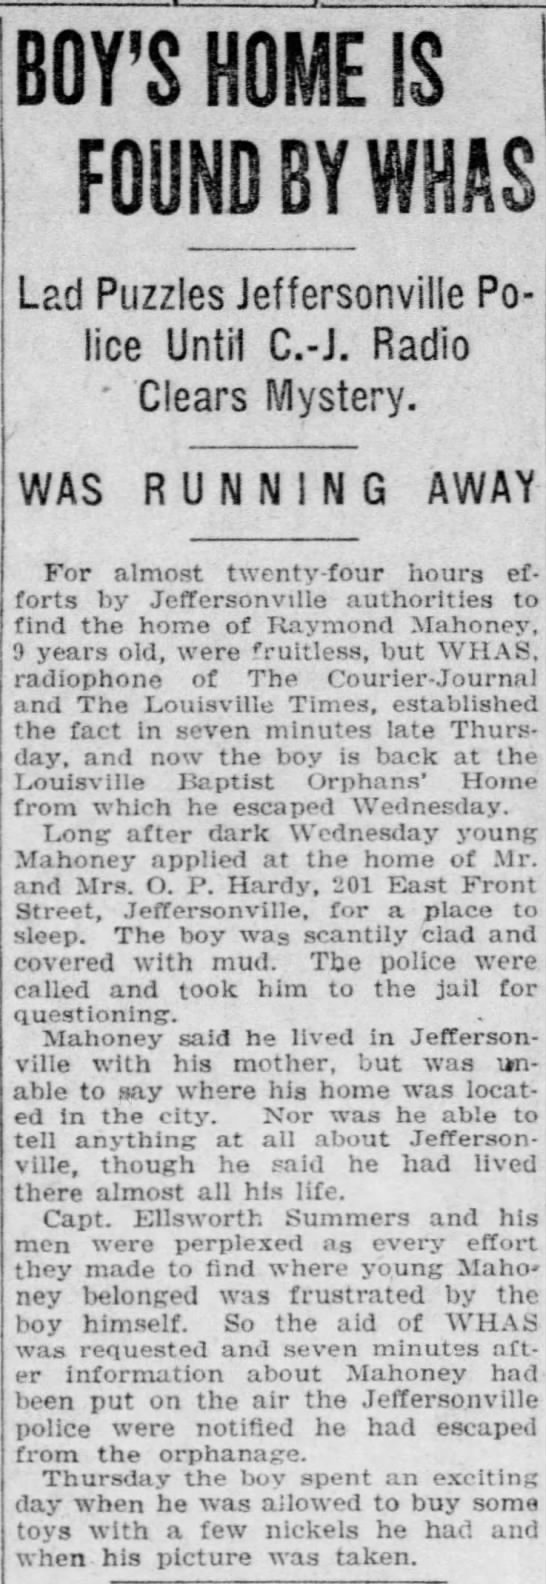 Raymond Mahoney at age 10 ran away from Louisville Baptist Orphans' Home -